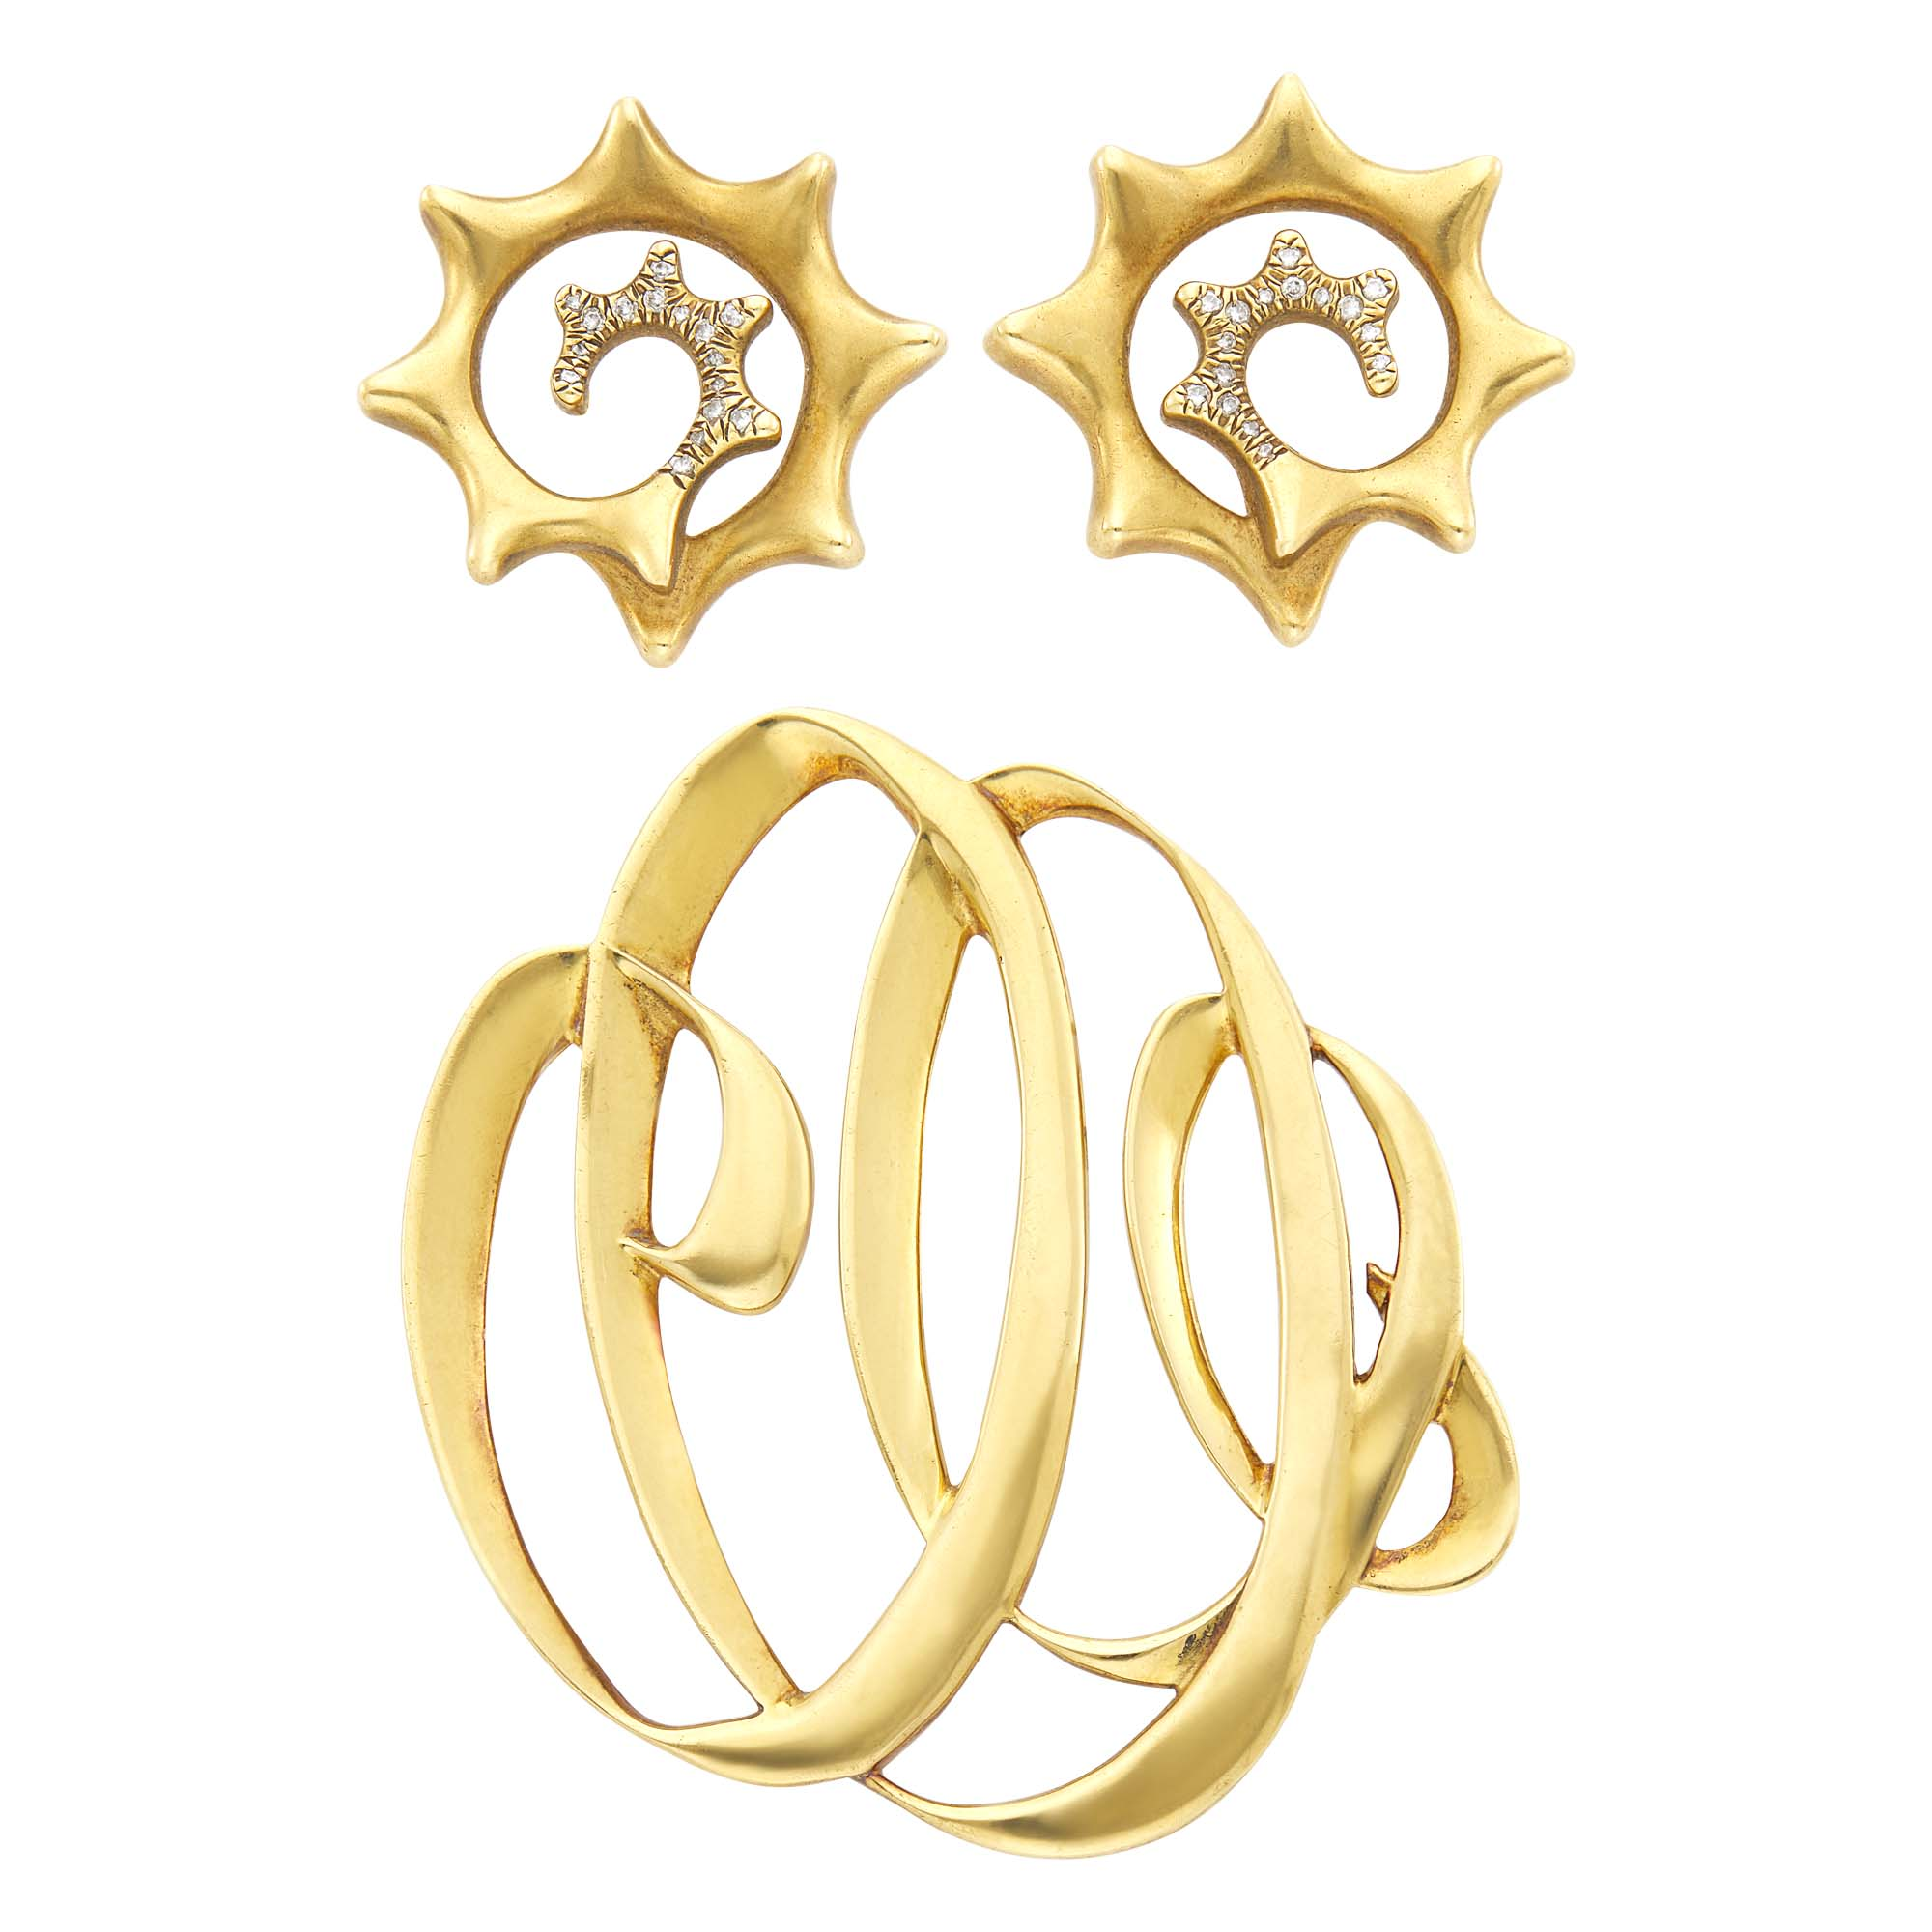 Lot image - Tiffany & Co. Paloma Picasso Gold Brooch and Angela Cummings Pair of Gold and Diamond Earrings